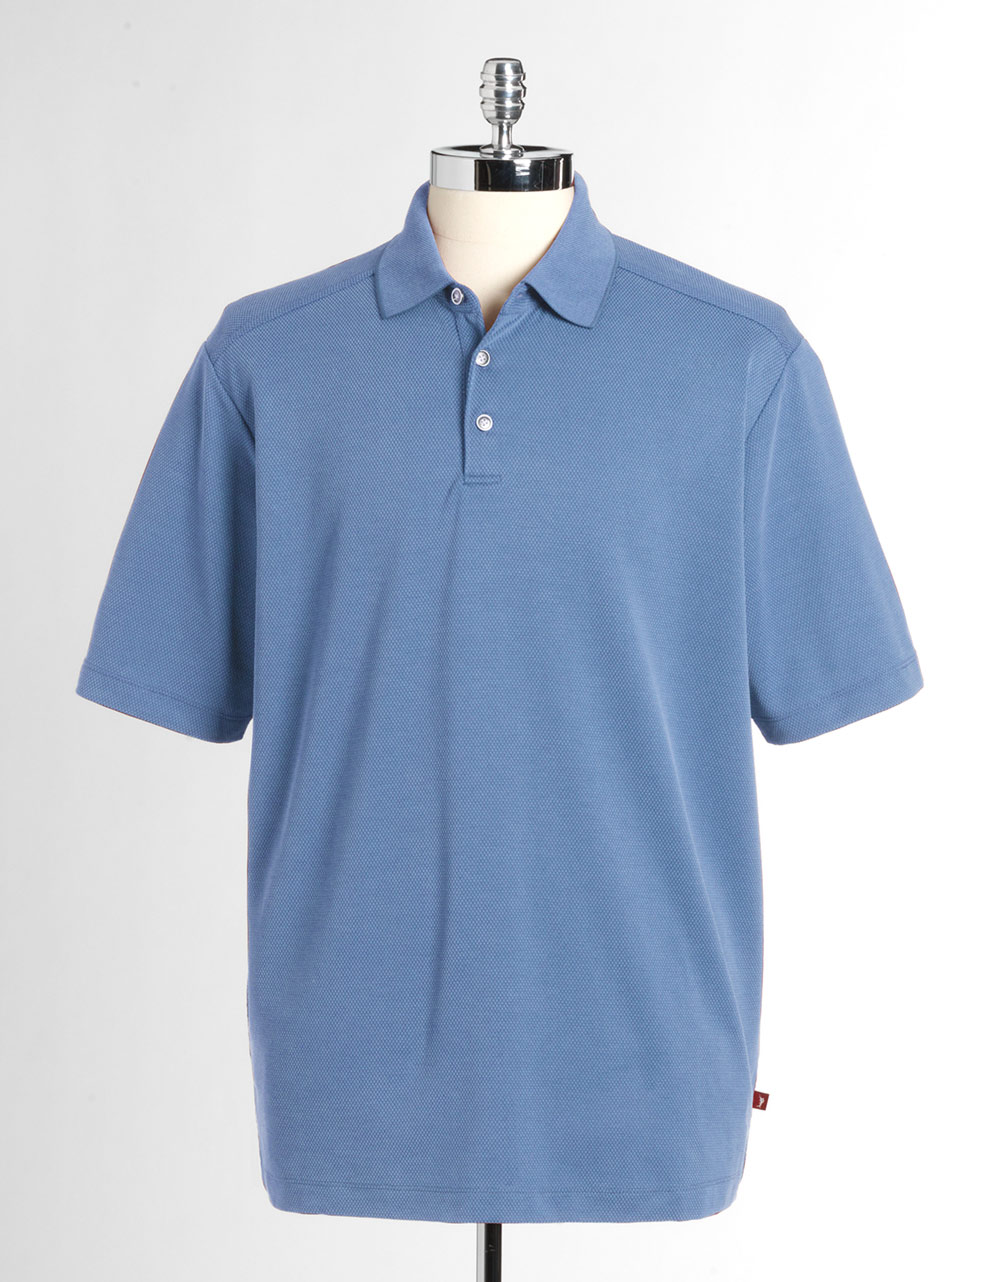 Tommy Bahama Short Sleeve Polo Shirt In Blue For Men Cabo